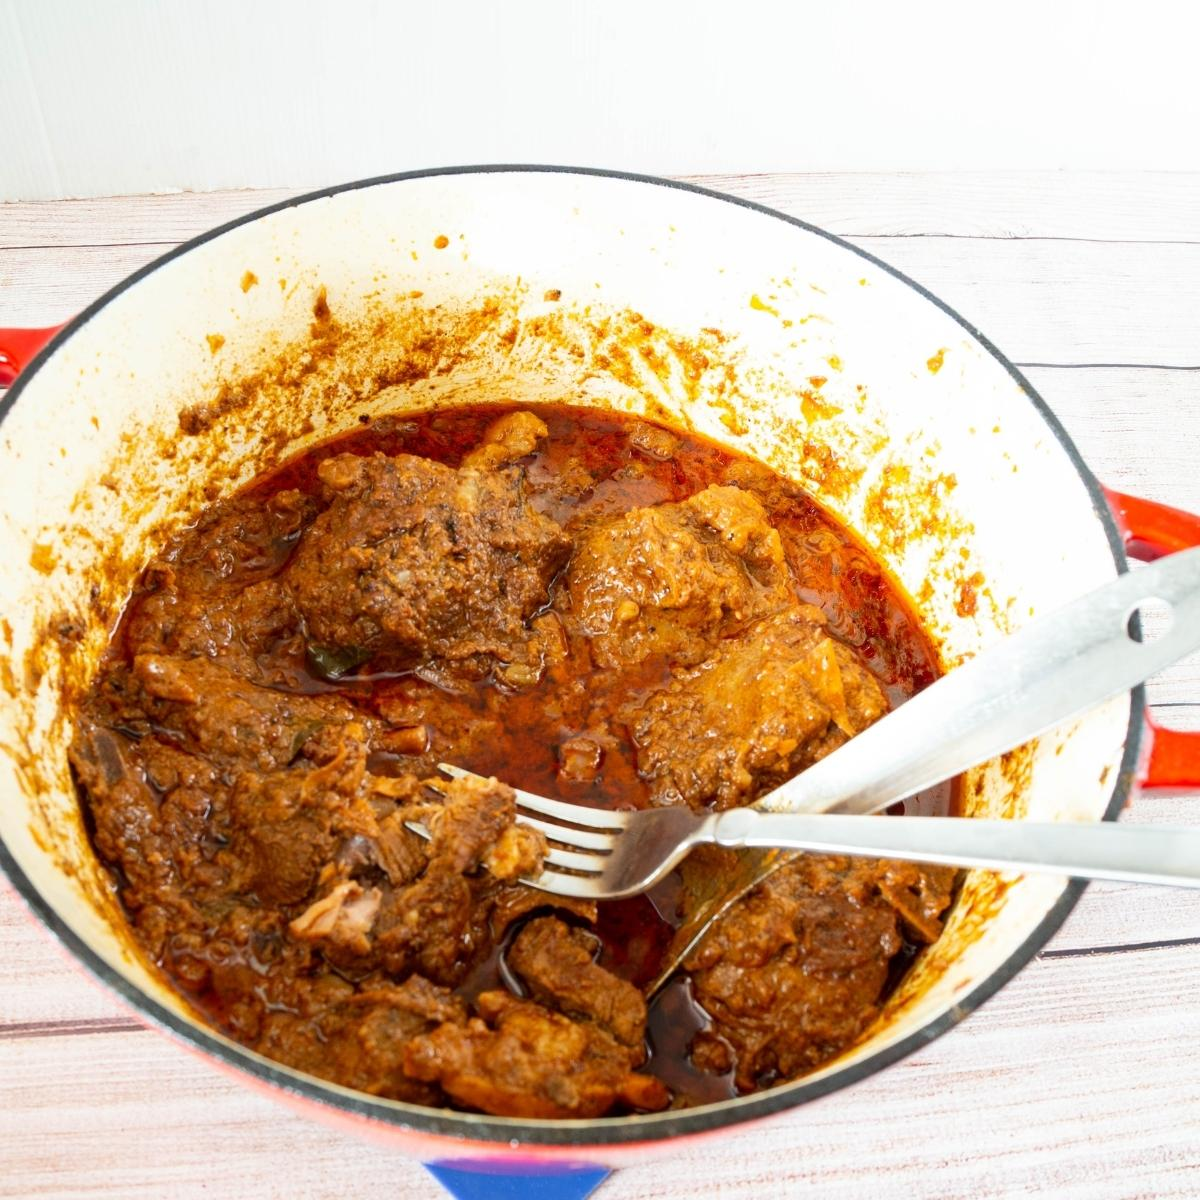 A Dutch oven with mutton curry.